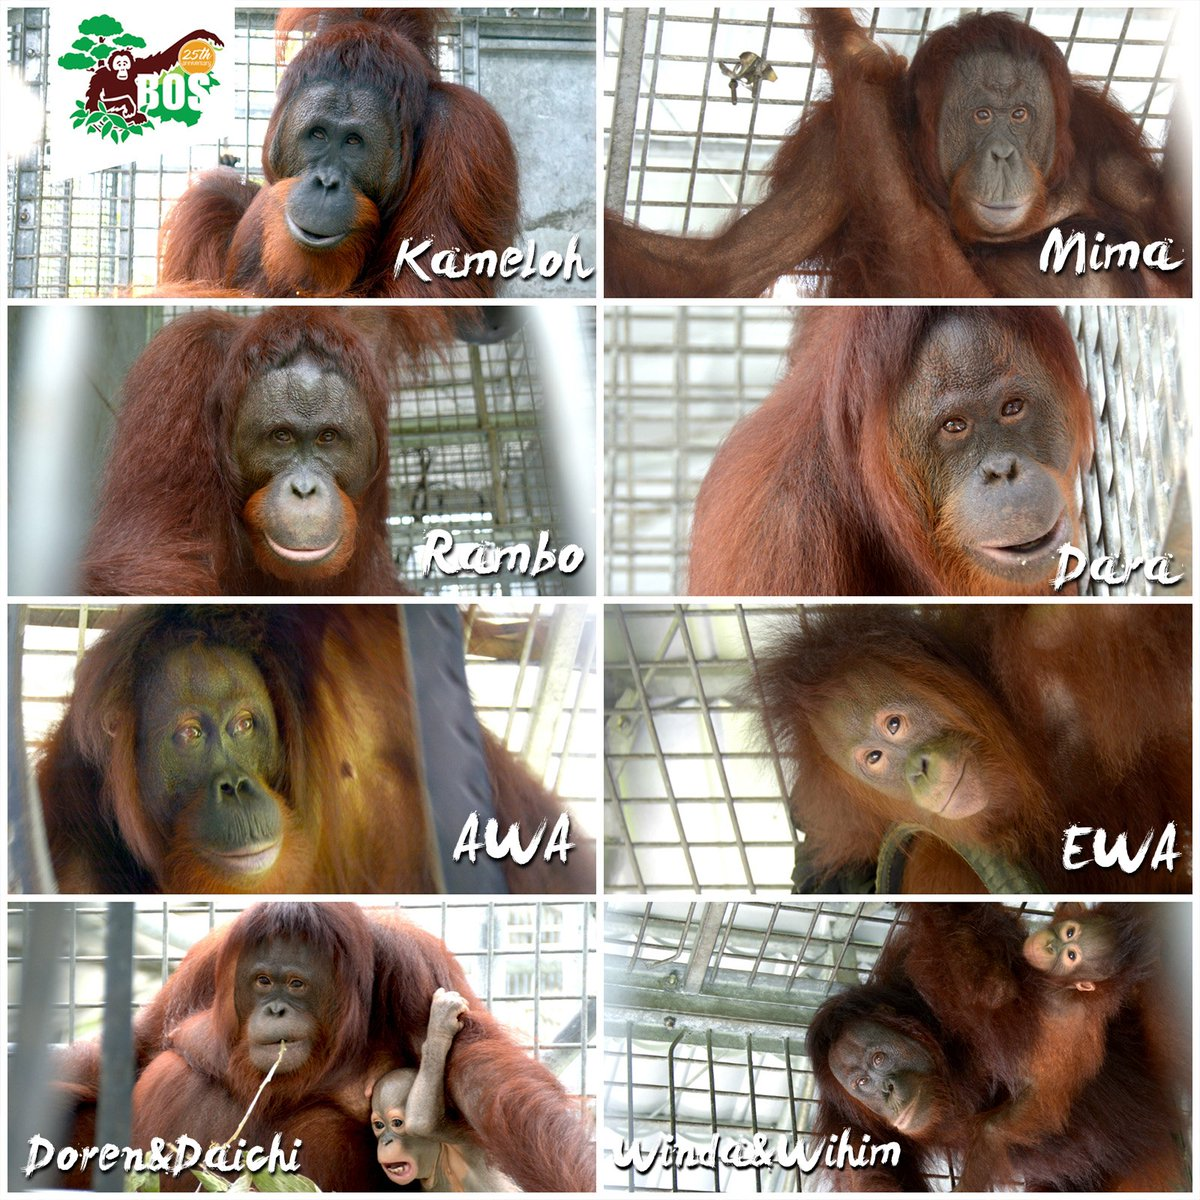 These 10 orangutans were released into the wild in Borneo last week. Image courtesy of the Borneo Orangutan Survival Foundation